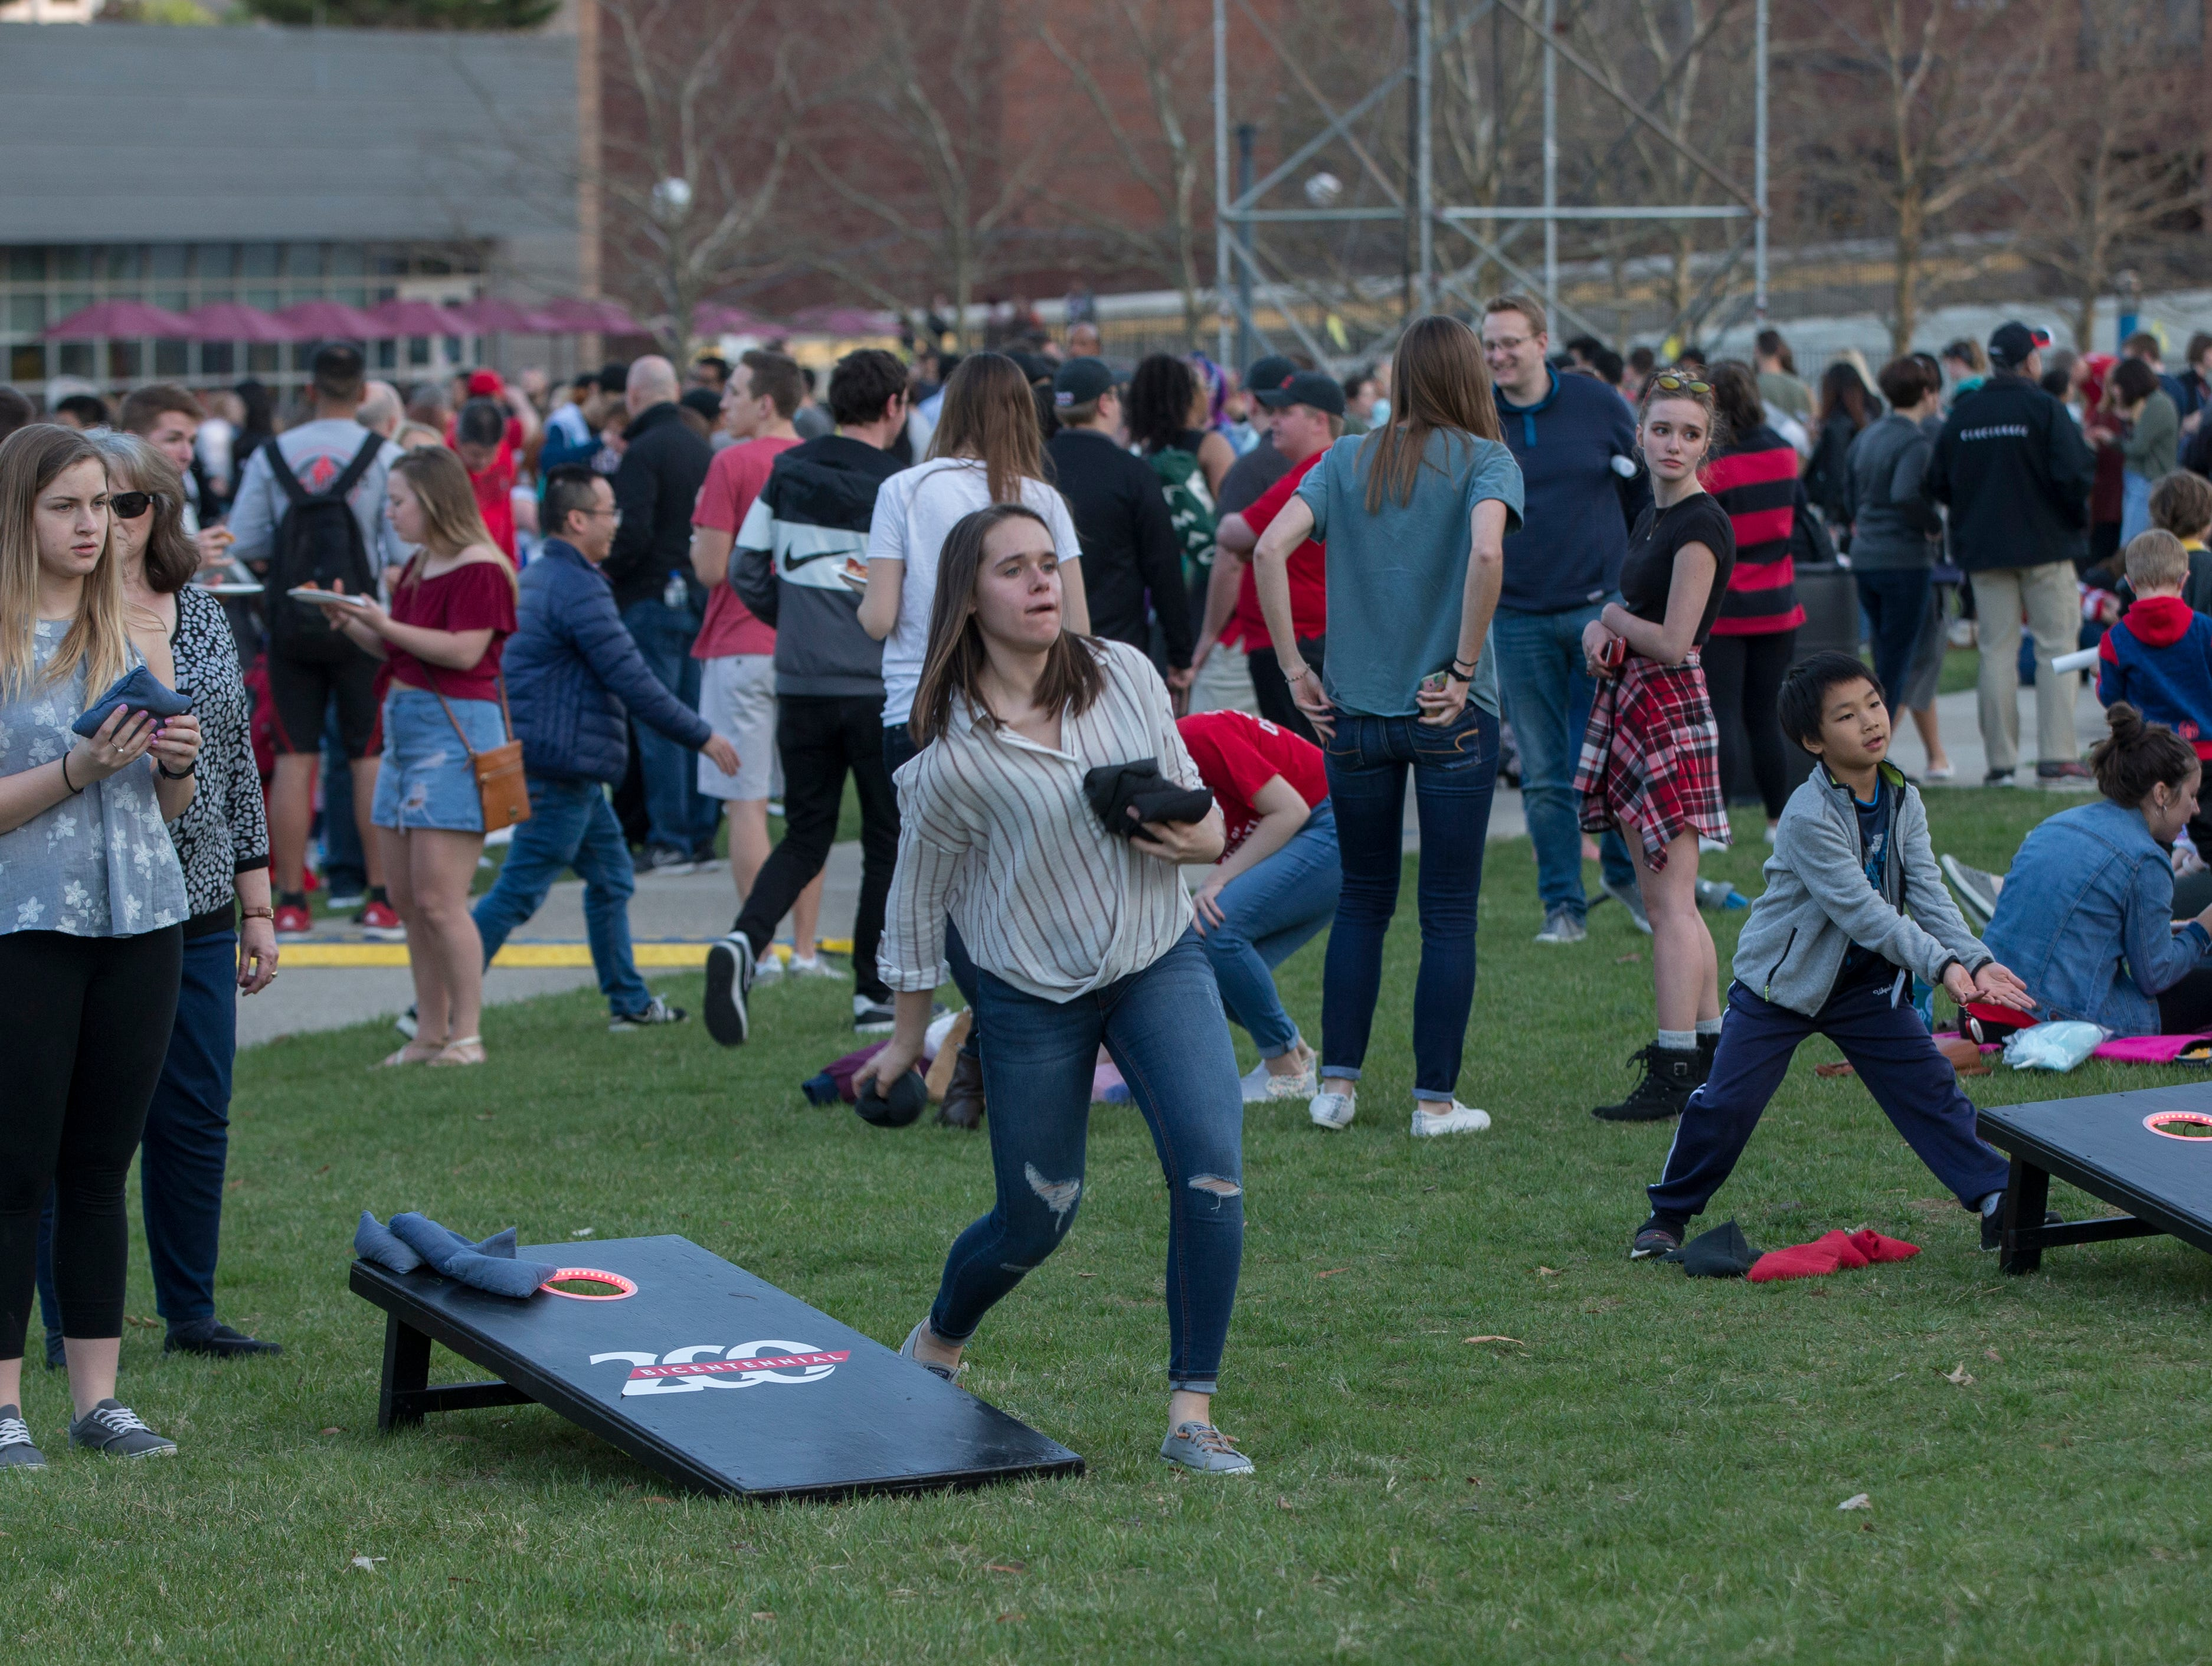 UC students and families played corn hole out on McMicken Commons during Community Day to celebrate UC's Bicentennial Saturday April 6, 2019. University of Cincinnati/Joseph Fuqua II